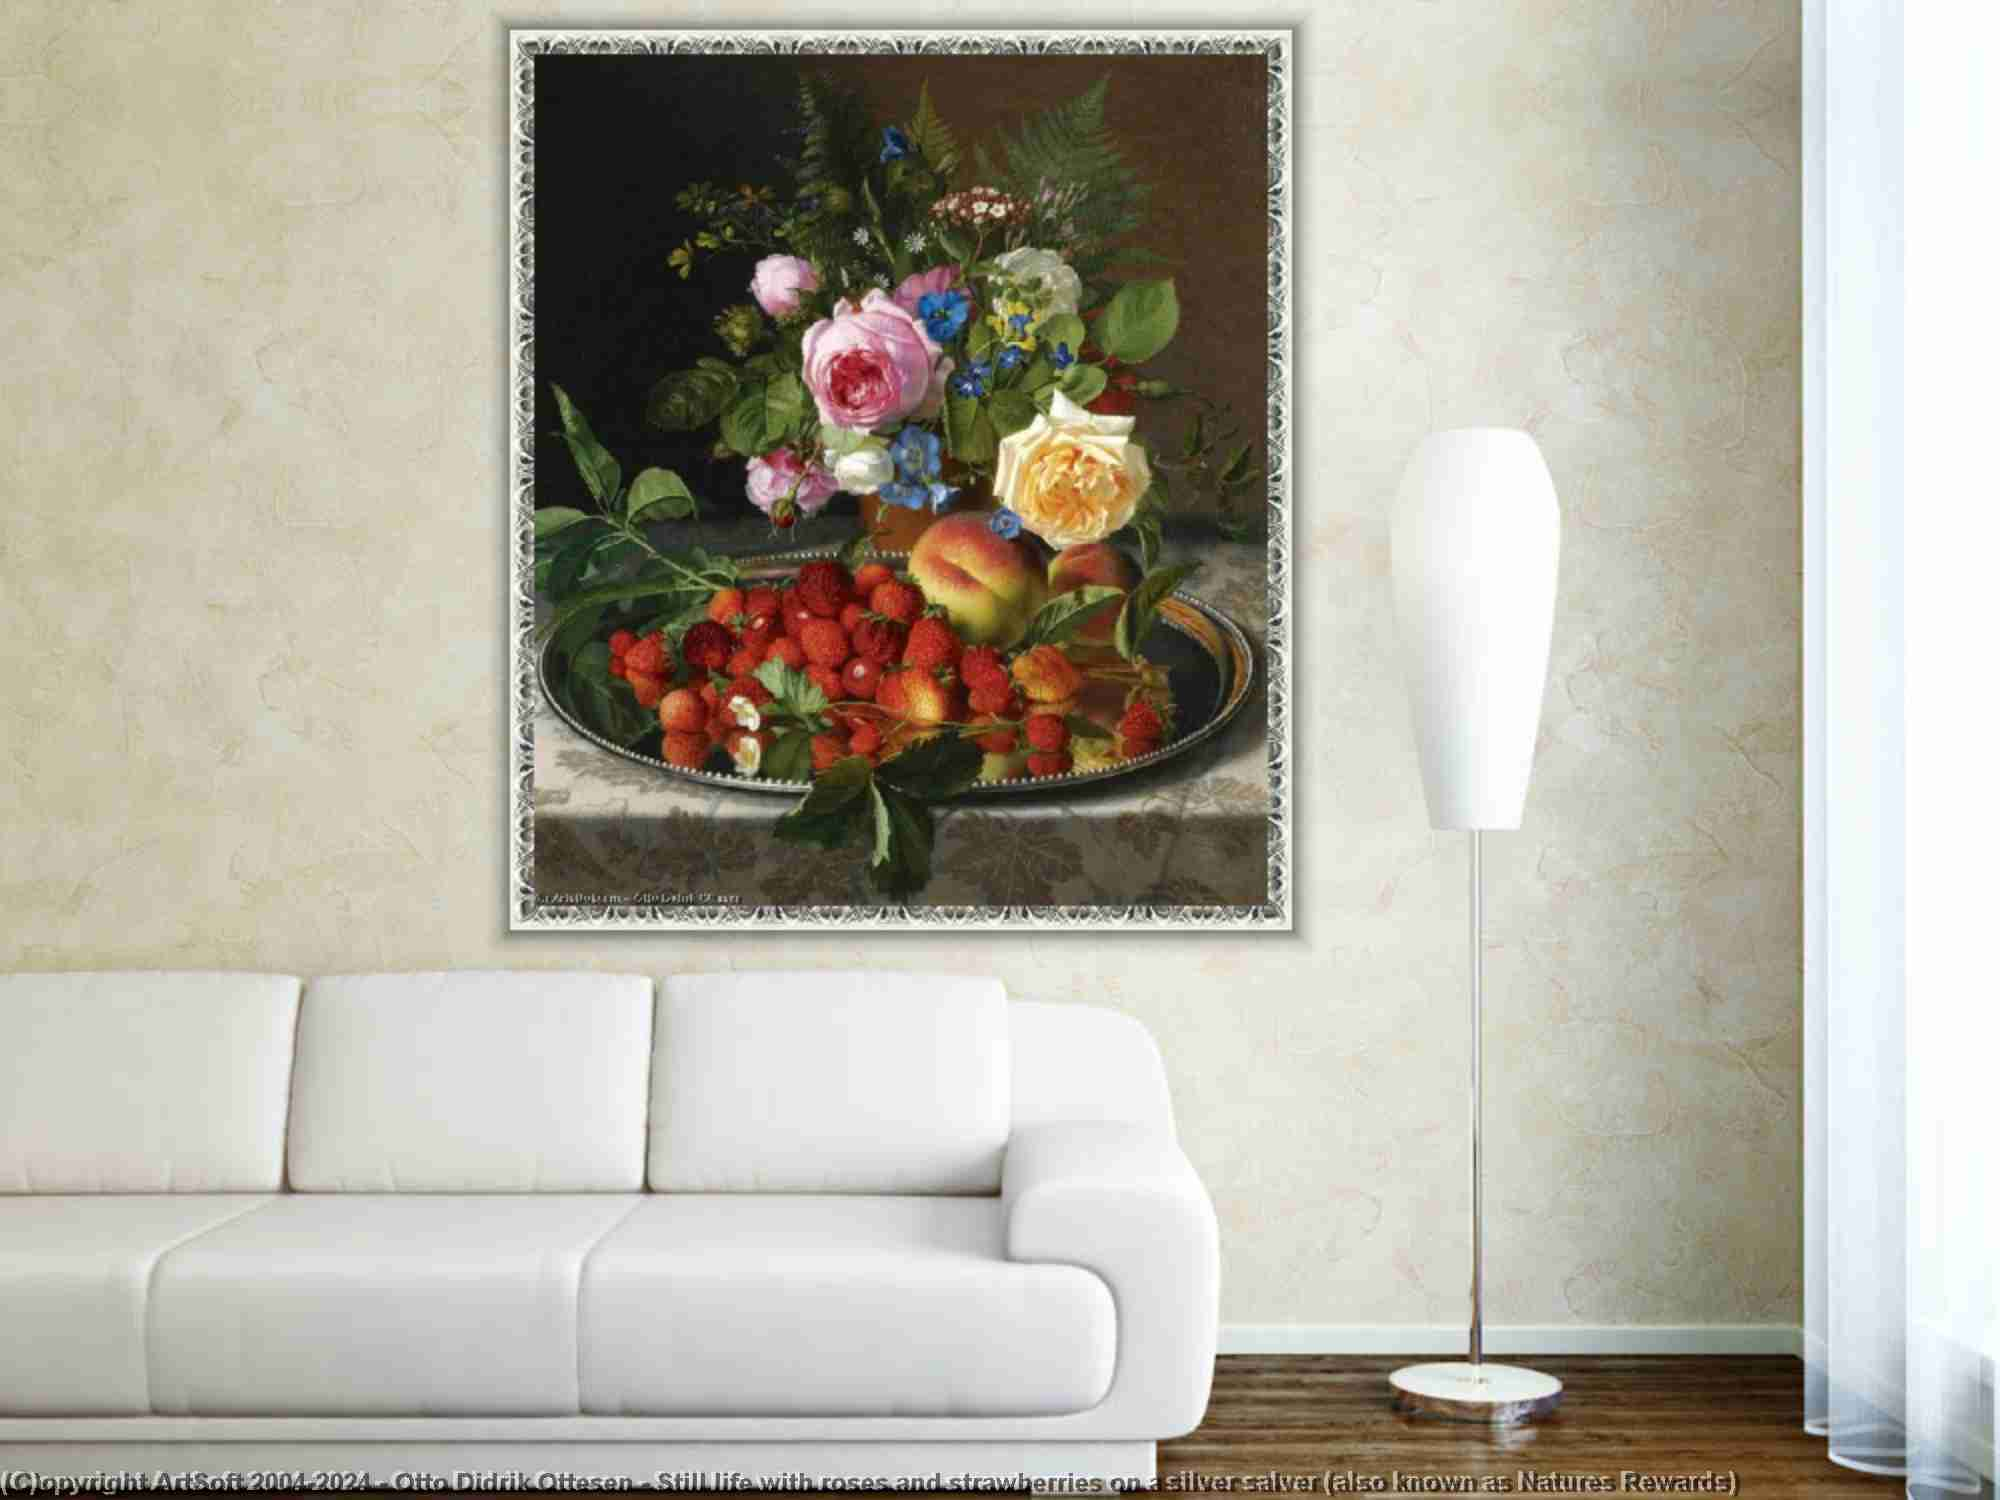 Otto Didrik Ottesen - Still life with roses and strawberries on a silver salver (also known as Natures Rewards)